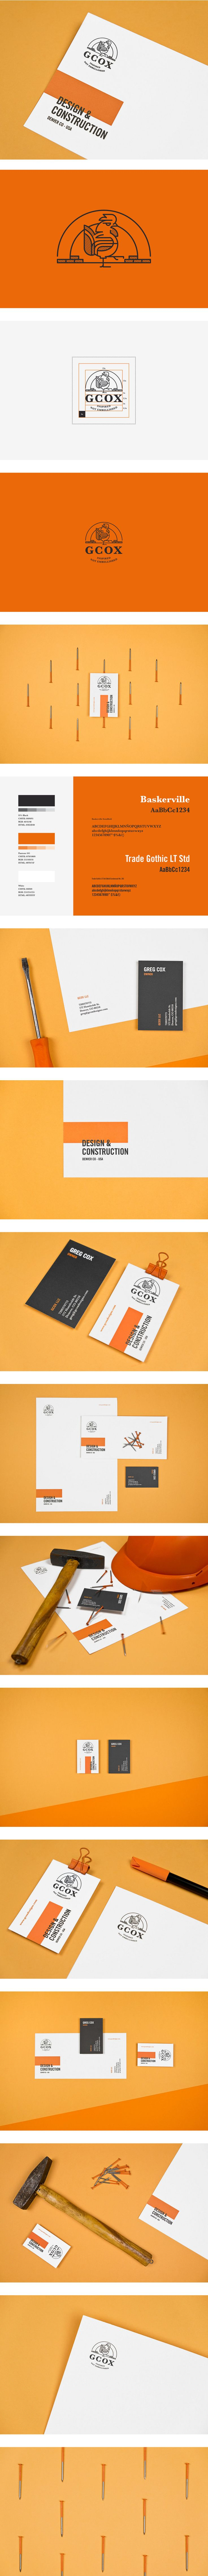 GCOX LLC Identity by Mubien Studio | More inspiration: http://ibrandstudio.com/inspiration/construction-company-identity-designs